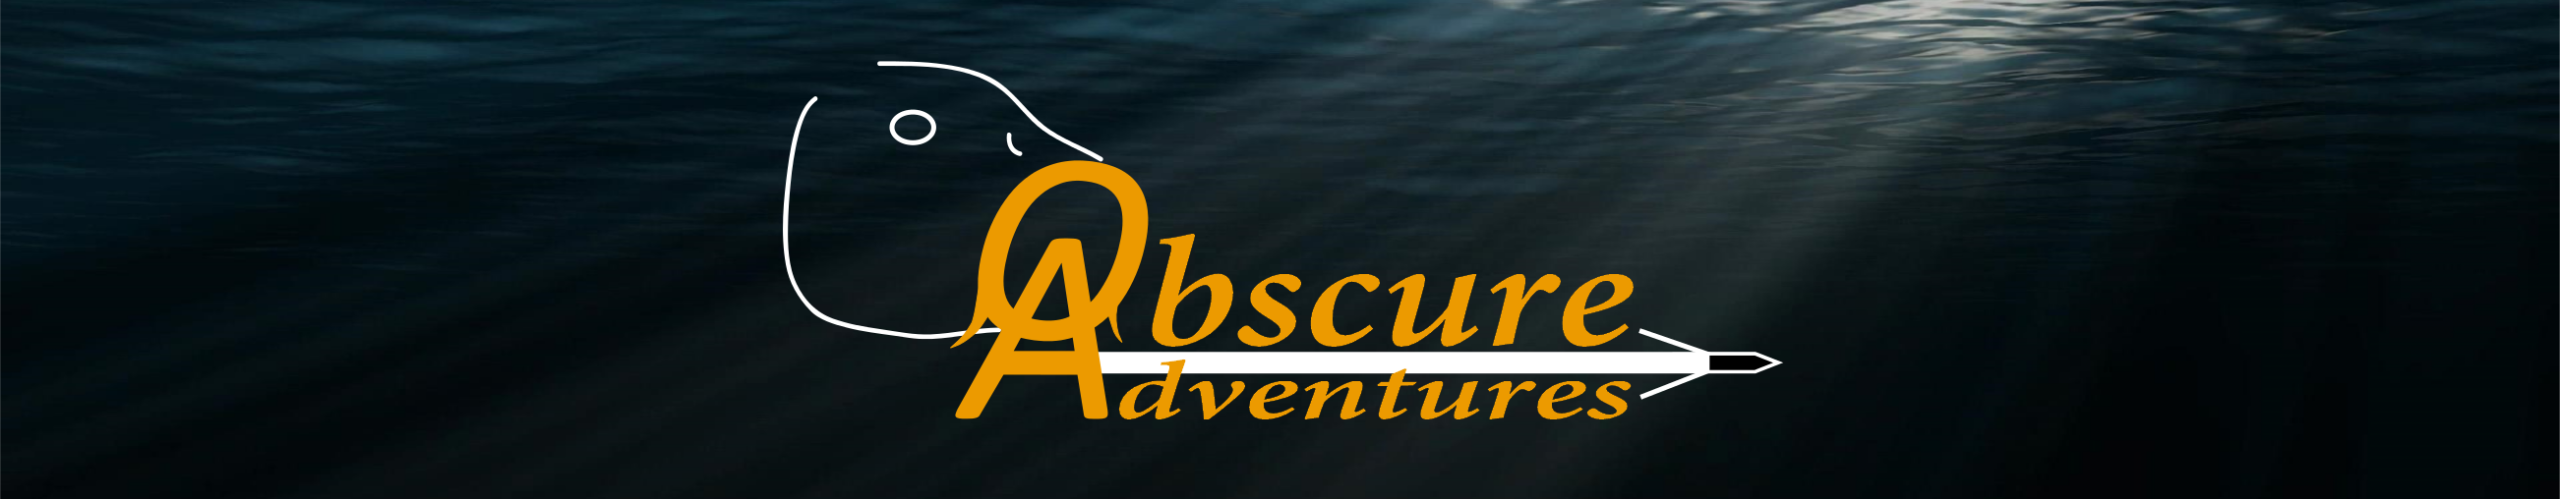 Obscure Adventures